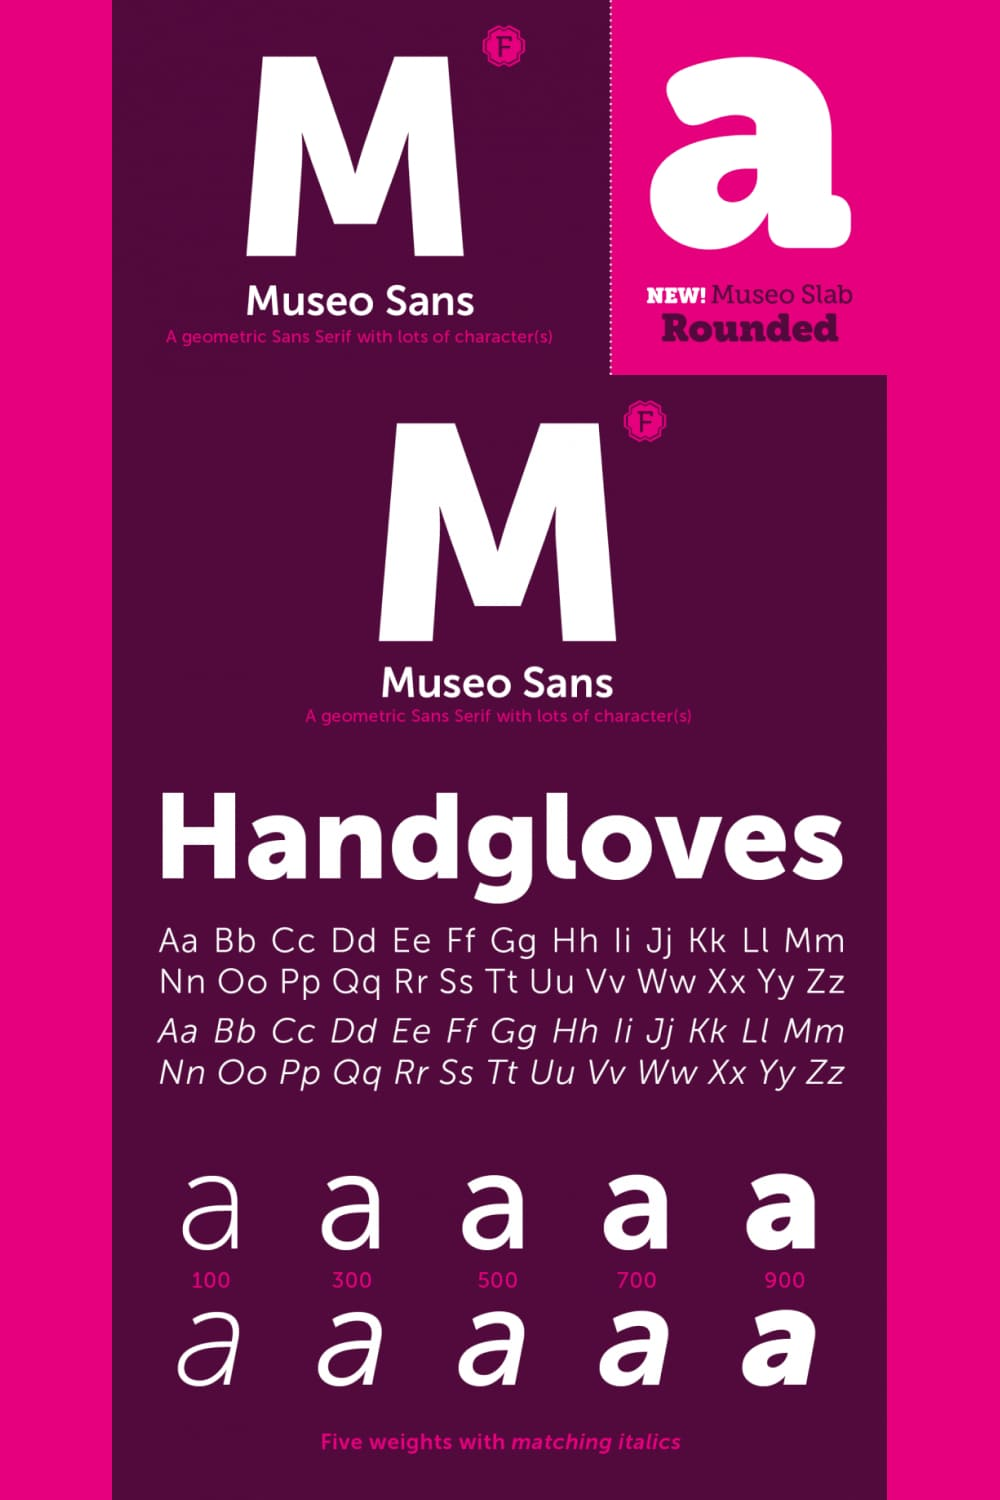 It is a sturdy, low contrast, geometric, highly legible sans serif typeface very well suited for any display and text use.